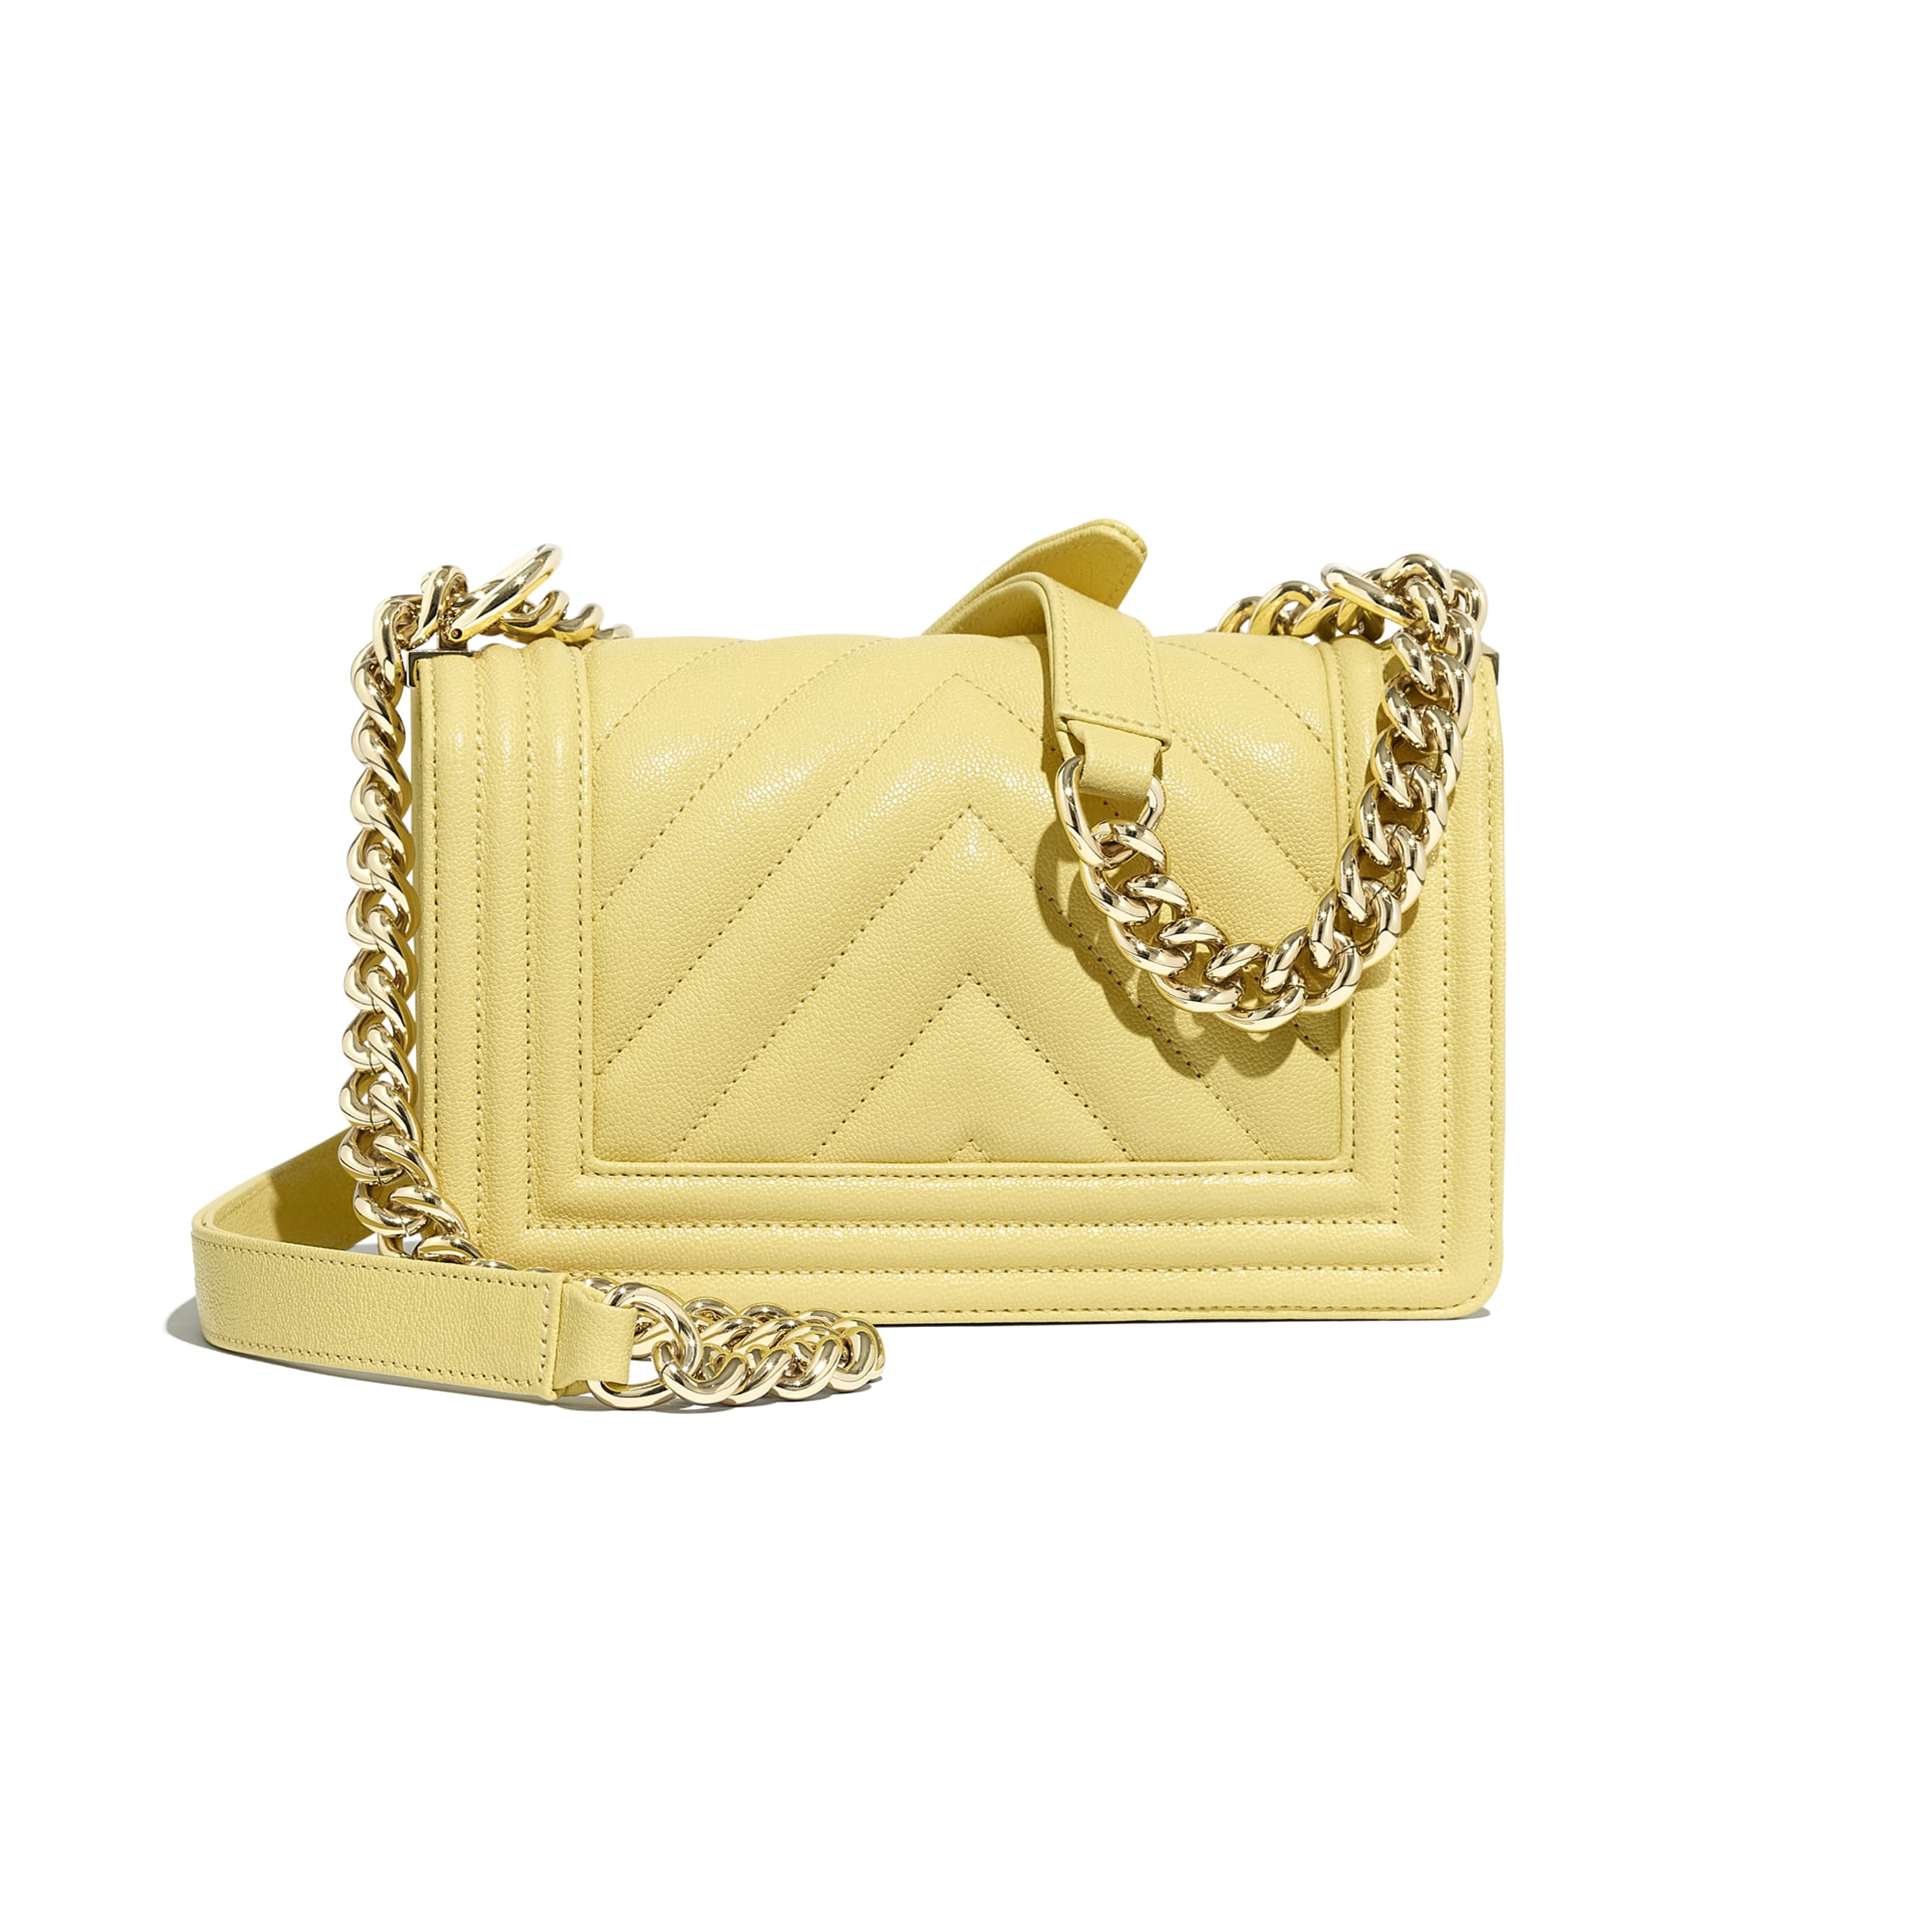 Small BOY CHANEL Handbag - Yellow - Grained Calfskin & Gold-Tone Metal - Alternative view - see standard sized version